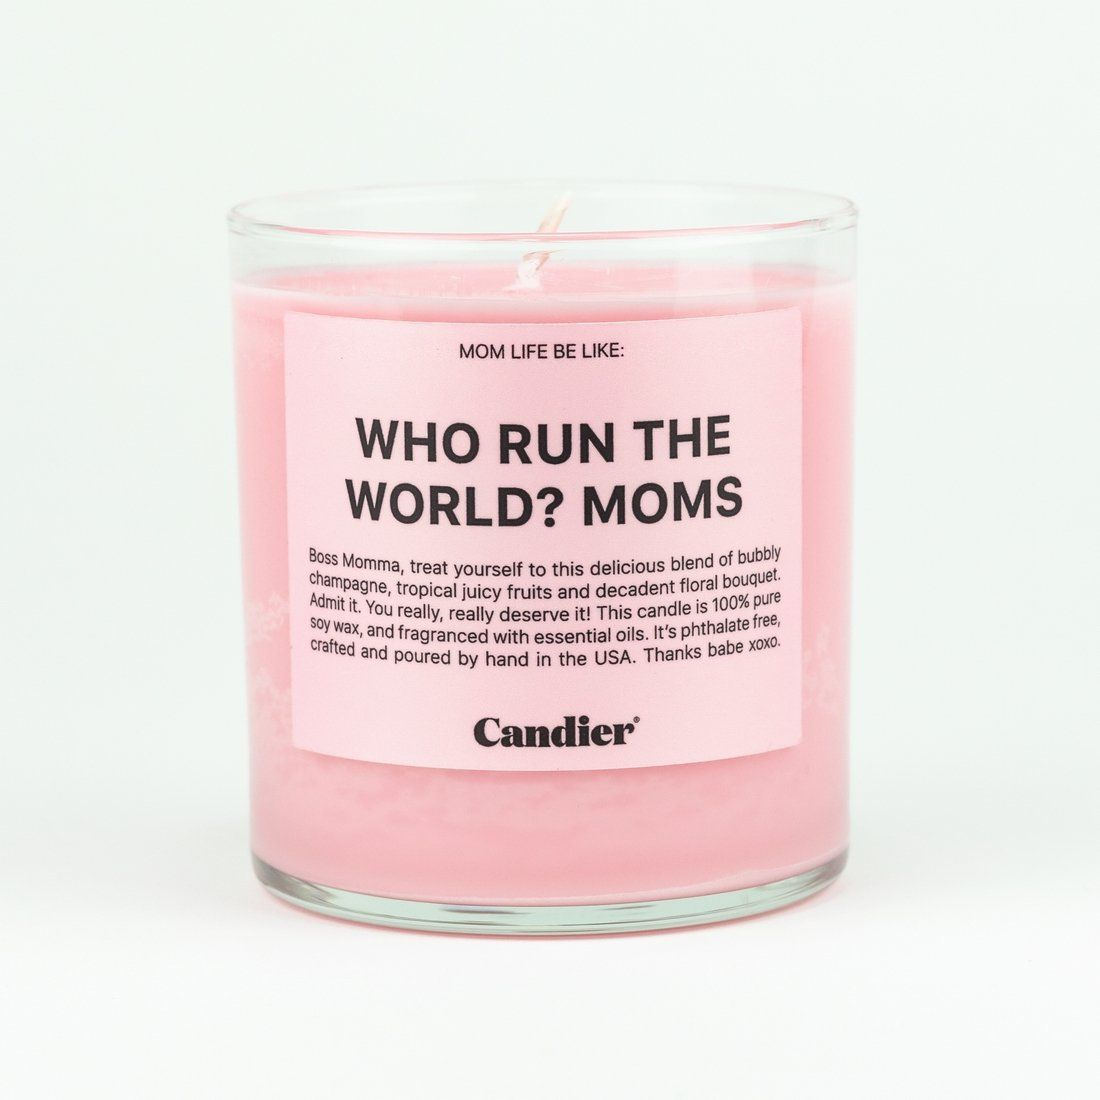 "Mom Life Be Like: ""WHO RUN THE WORLD? MOMS."" Boss Momma, treat yourself to this delicious blend of bubbly champagne, tropical juicy fruits and decadent floral bouquet. Admit it. You really, really deserve it! This candle is 100% soy wax, fragranced with essential oils. It's phthalate free. Oh yeah, and it's crafted and poured by hand in the USA. Thanks babygirl xoxo. 9oz Soy Candle"